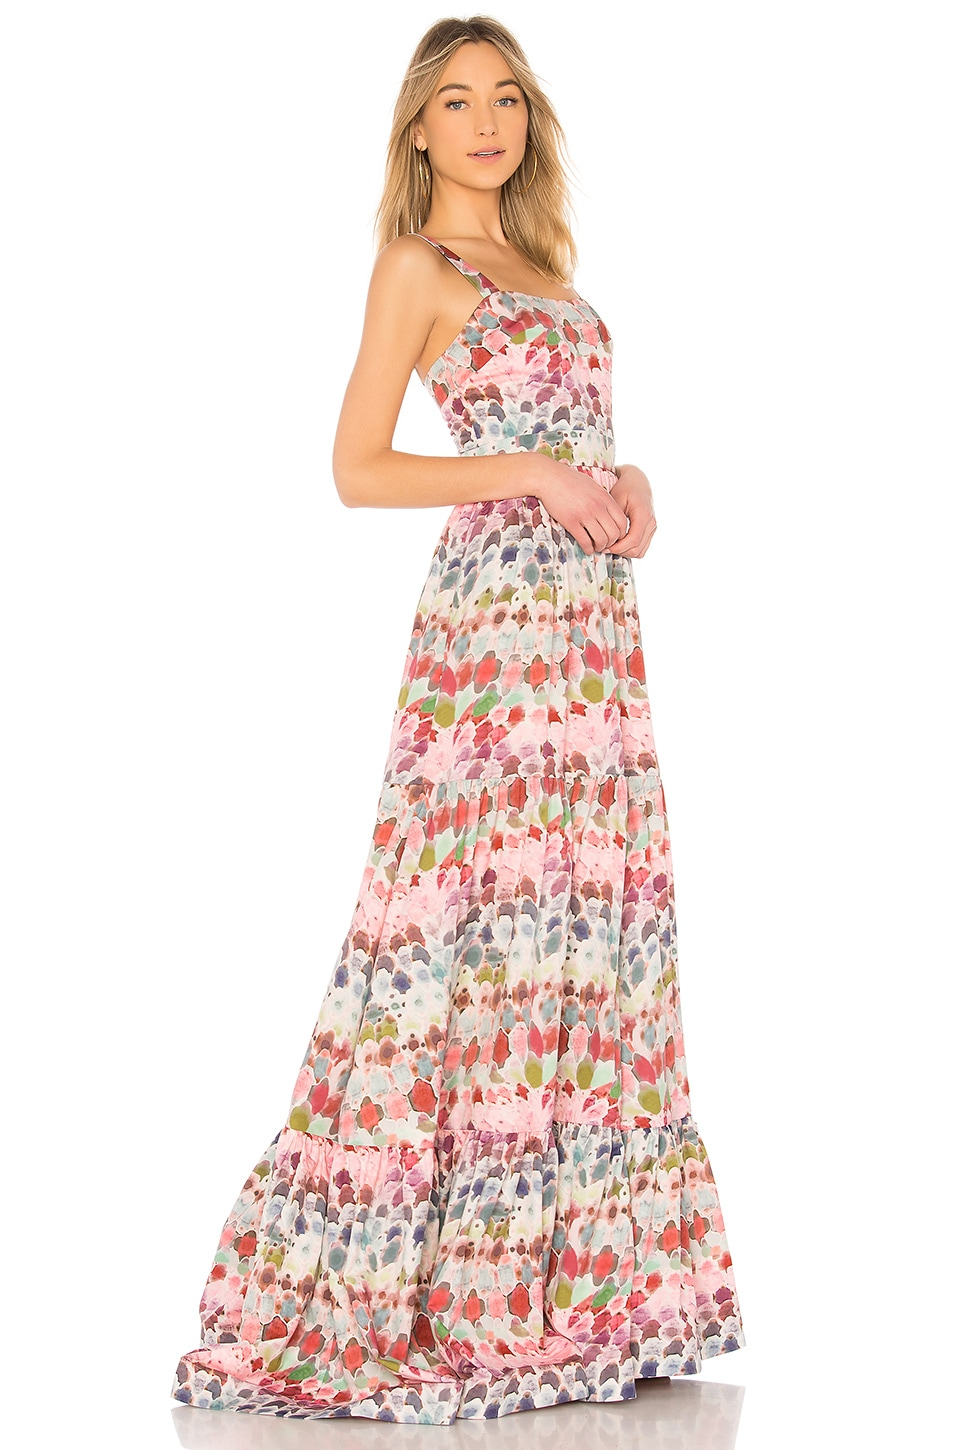 Alexis Galia Dress Crepe in Water Abstract Print